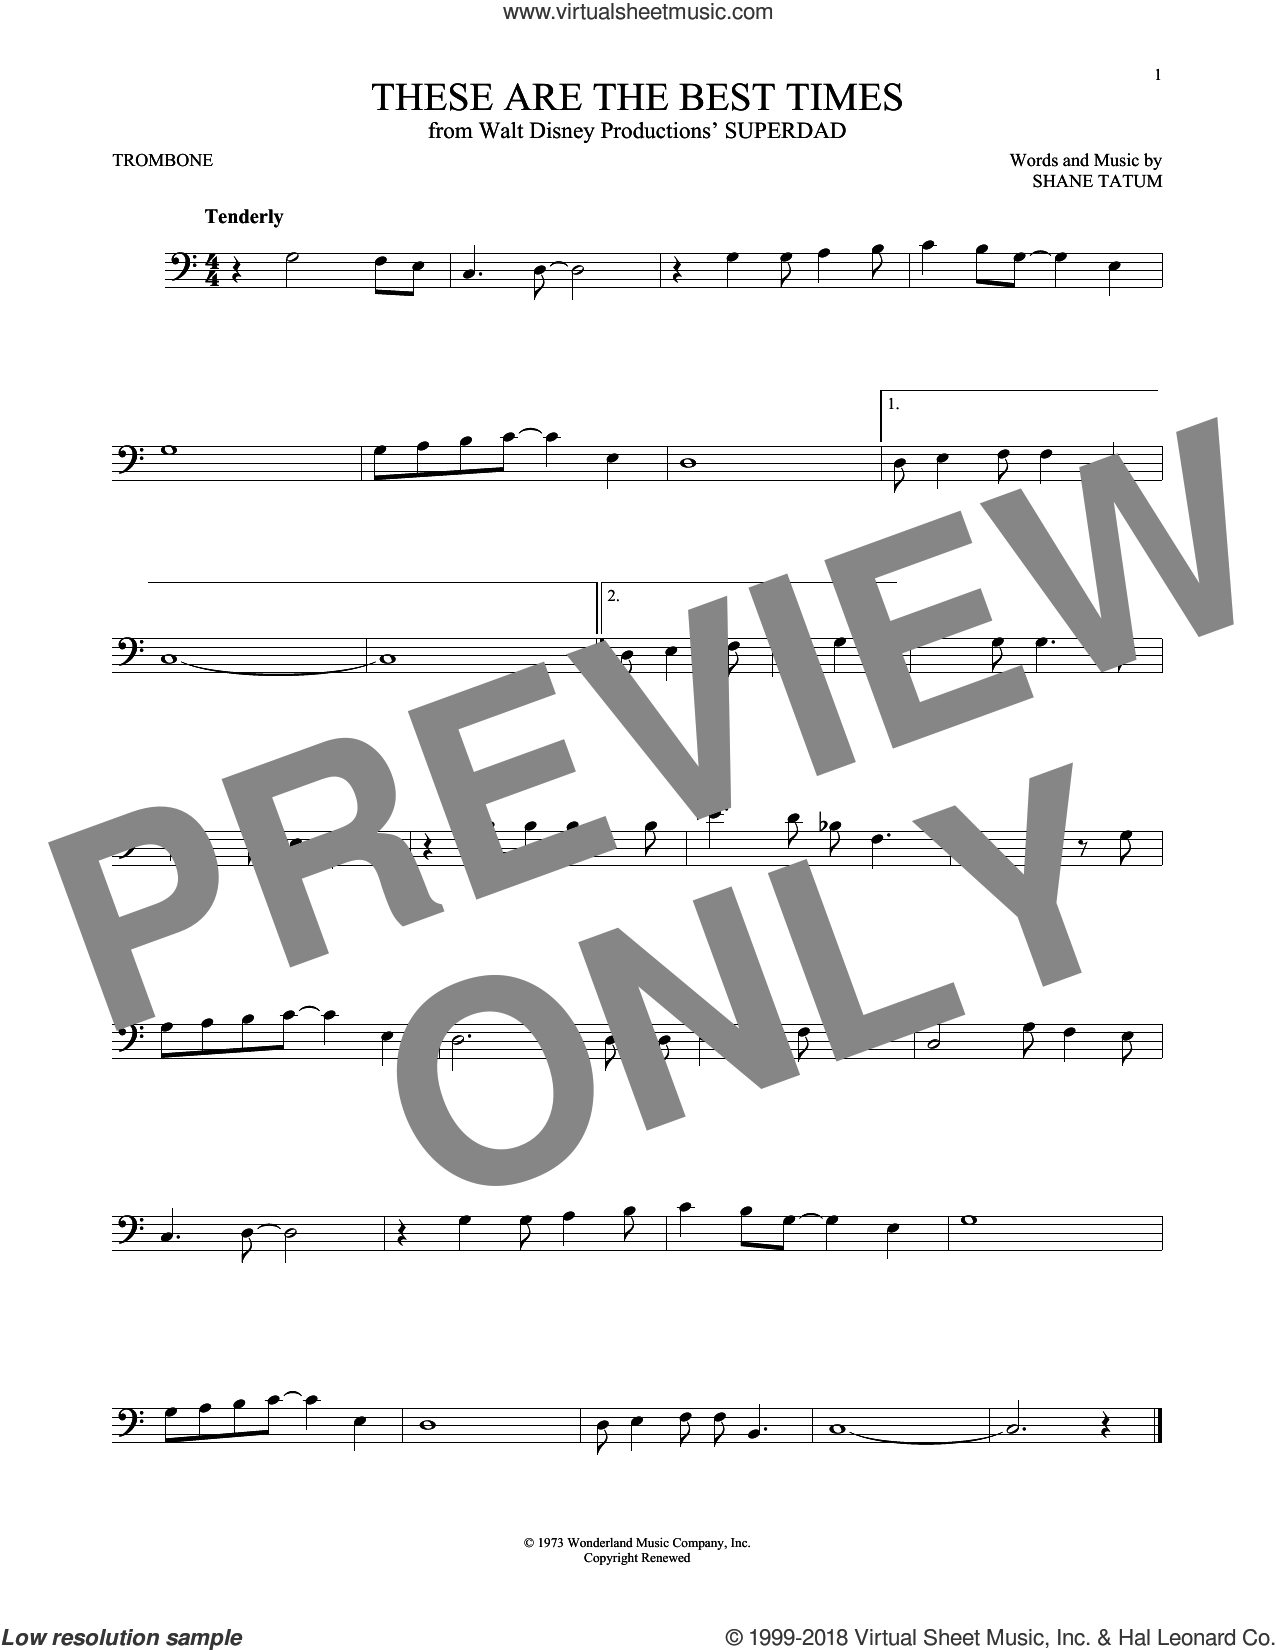 These Are The Best Times sheet music for trombone solo by Shane Tatum, intermediate skill level